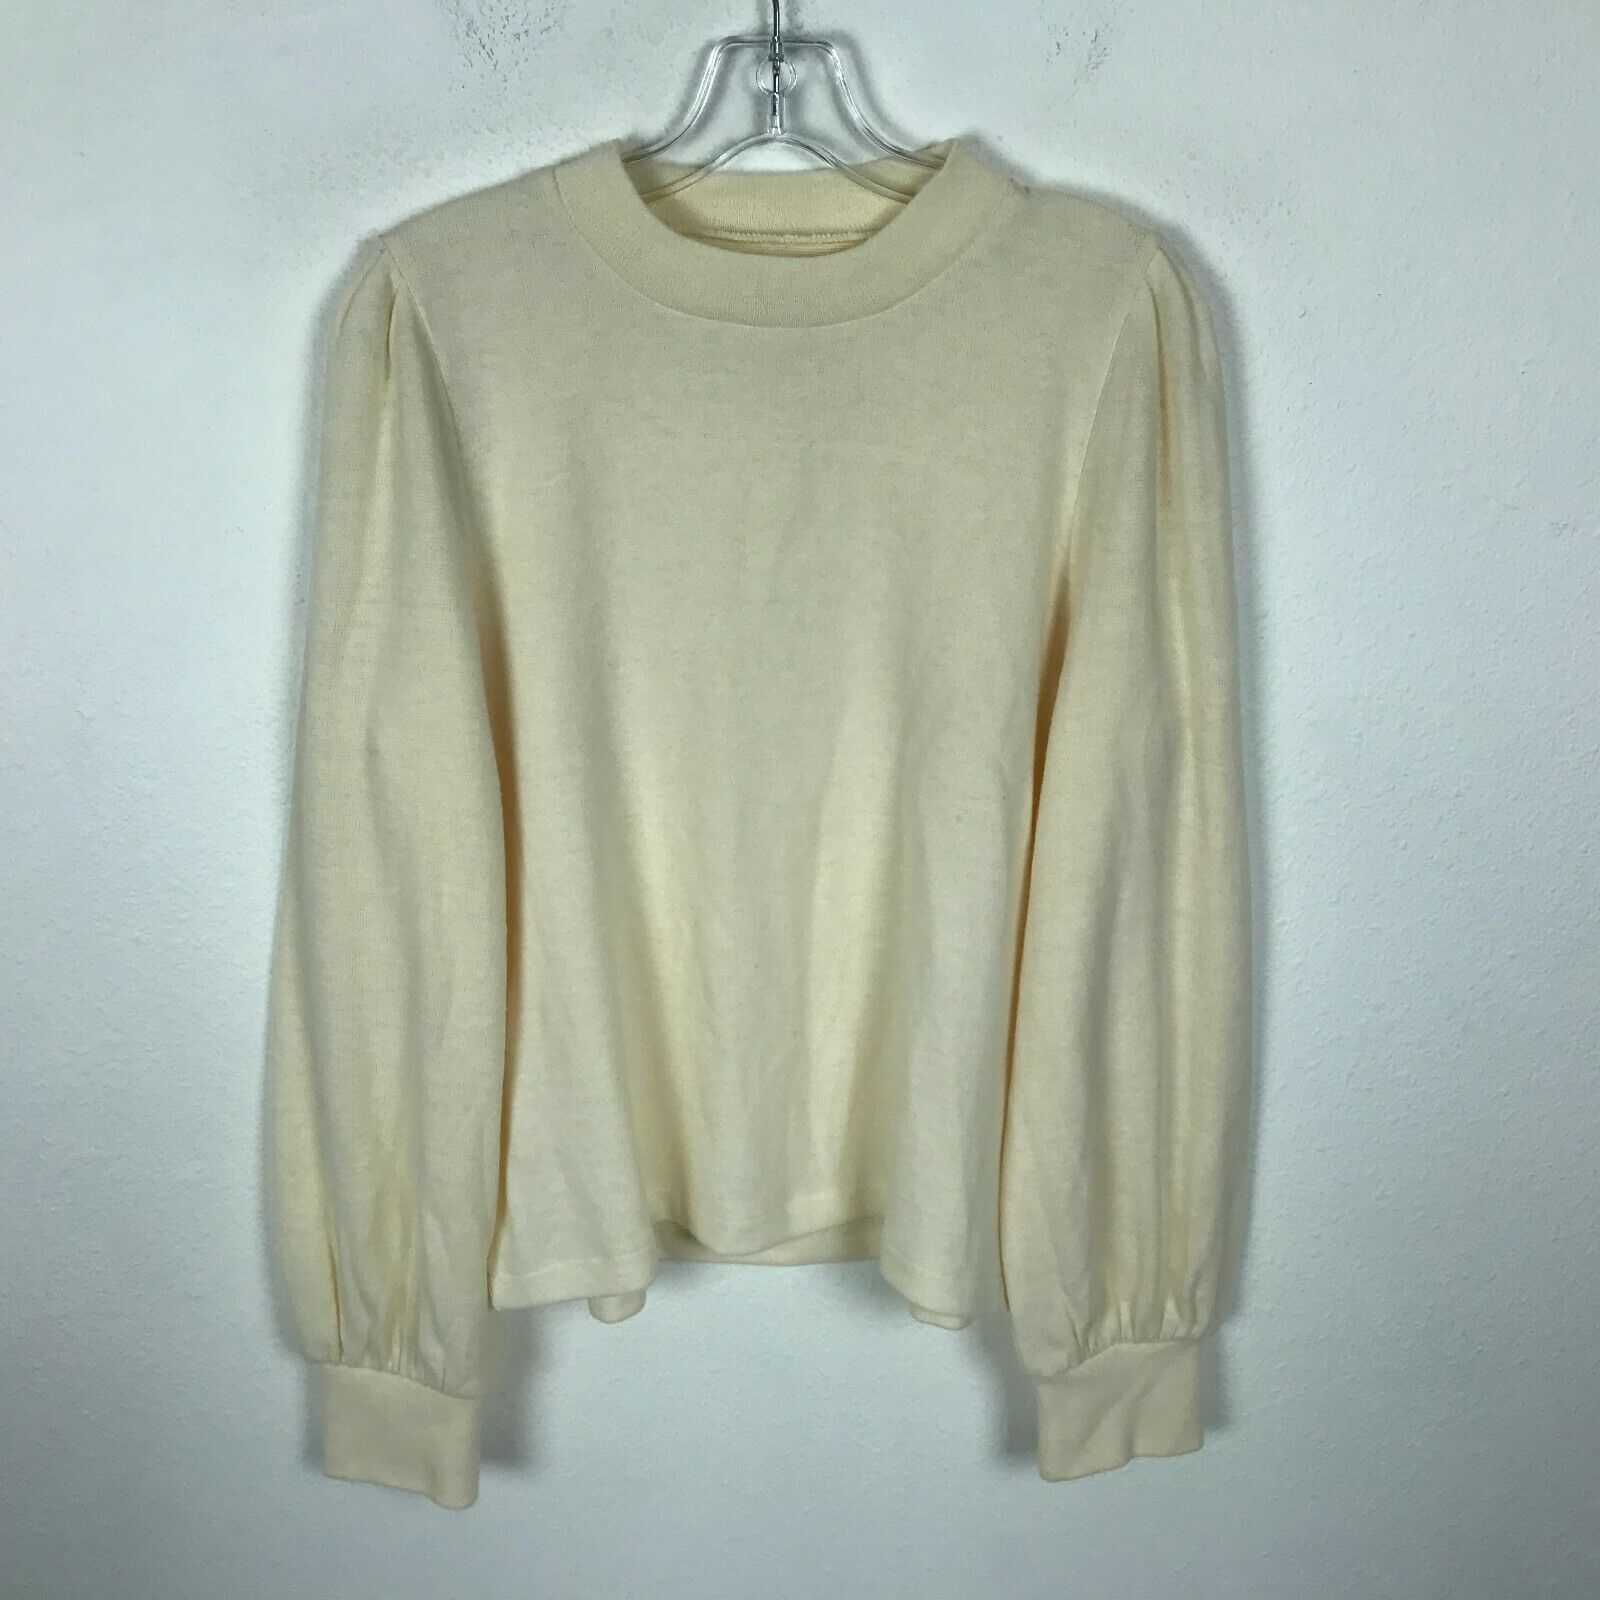 Product Image 1 - Madewell Sweater Size L Ivory